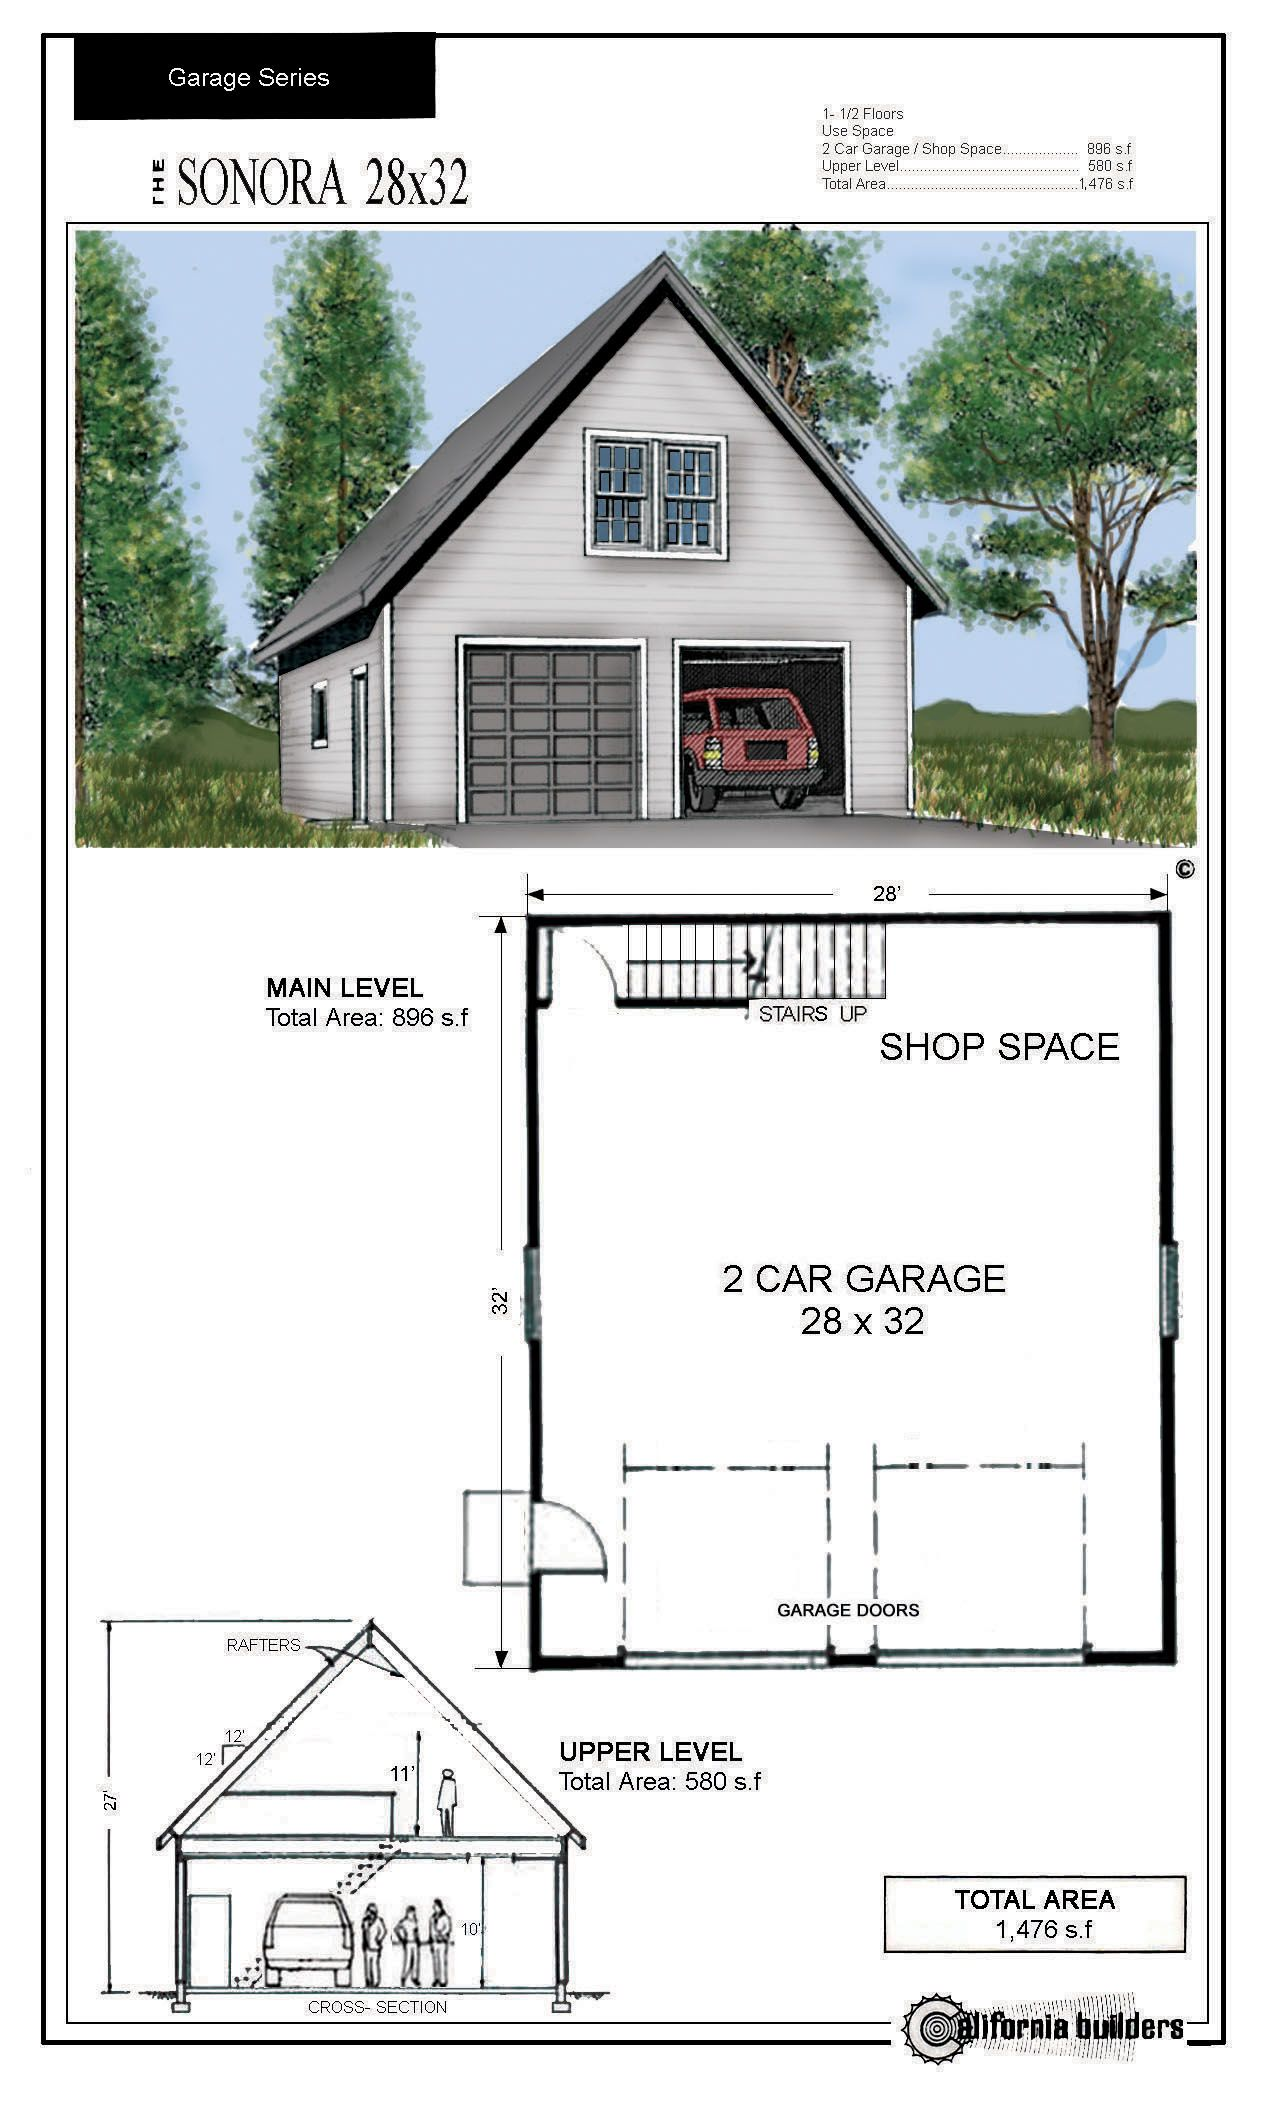 Unique 30x30 Garage Kits 6 30x30 Garage Apartment Plans Garage Design Garage Plans Detached Garage Apartment Plans